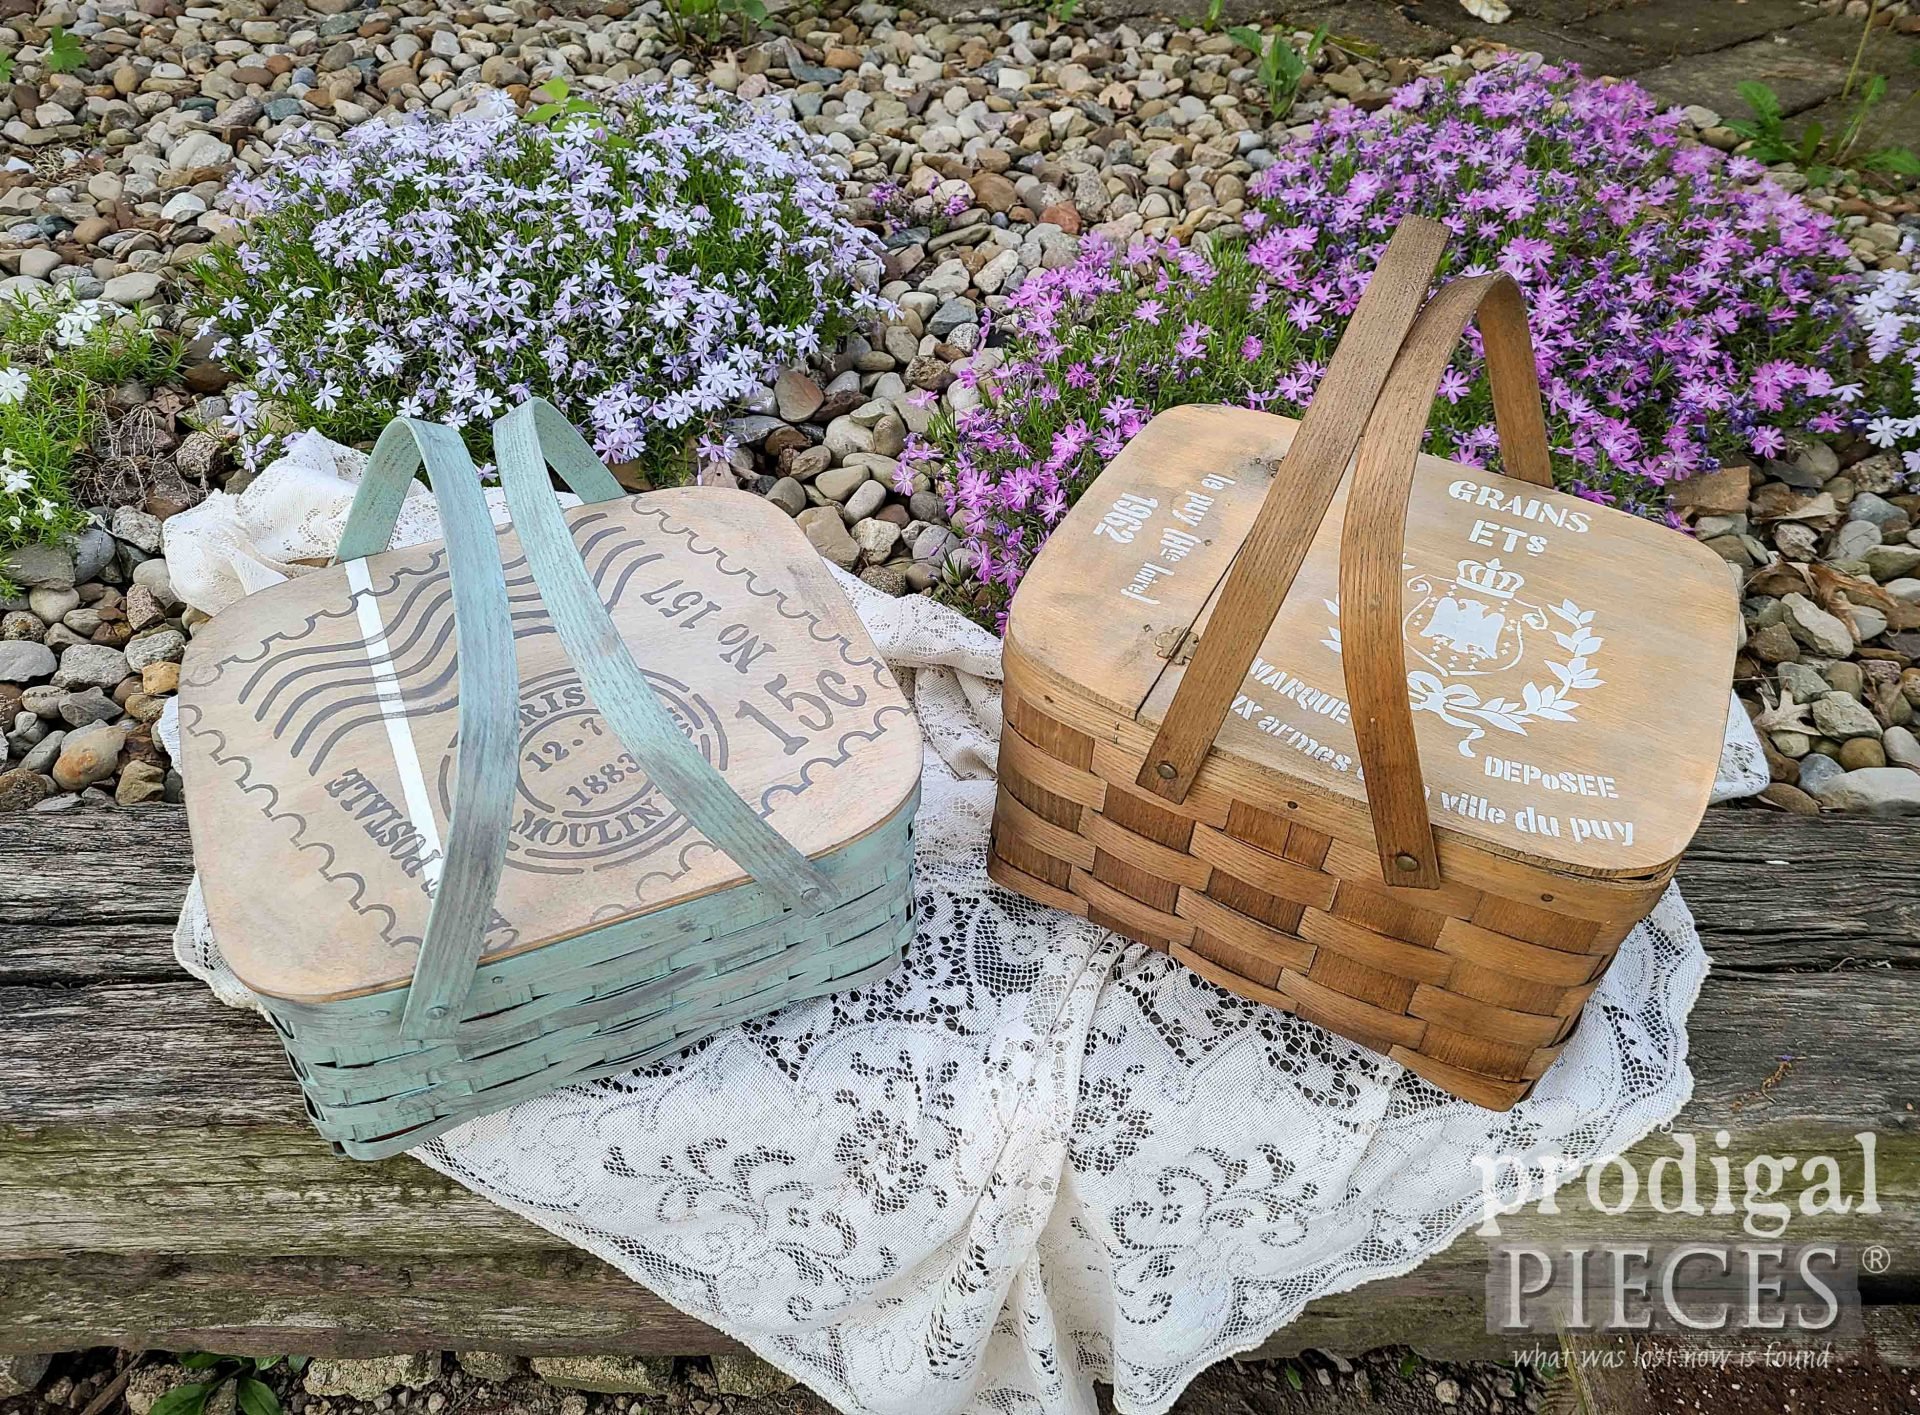 Farmhouse Style Upcycled PIcnic Baskets with Stenils by Larissa of Prodigal Pieces | prodigalpieces.com #prodigalpieces #farmhouse #diy #home #homedecor #cottage